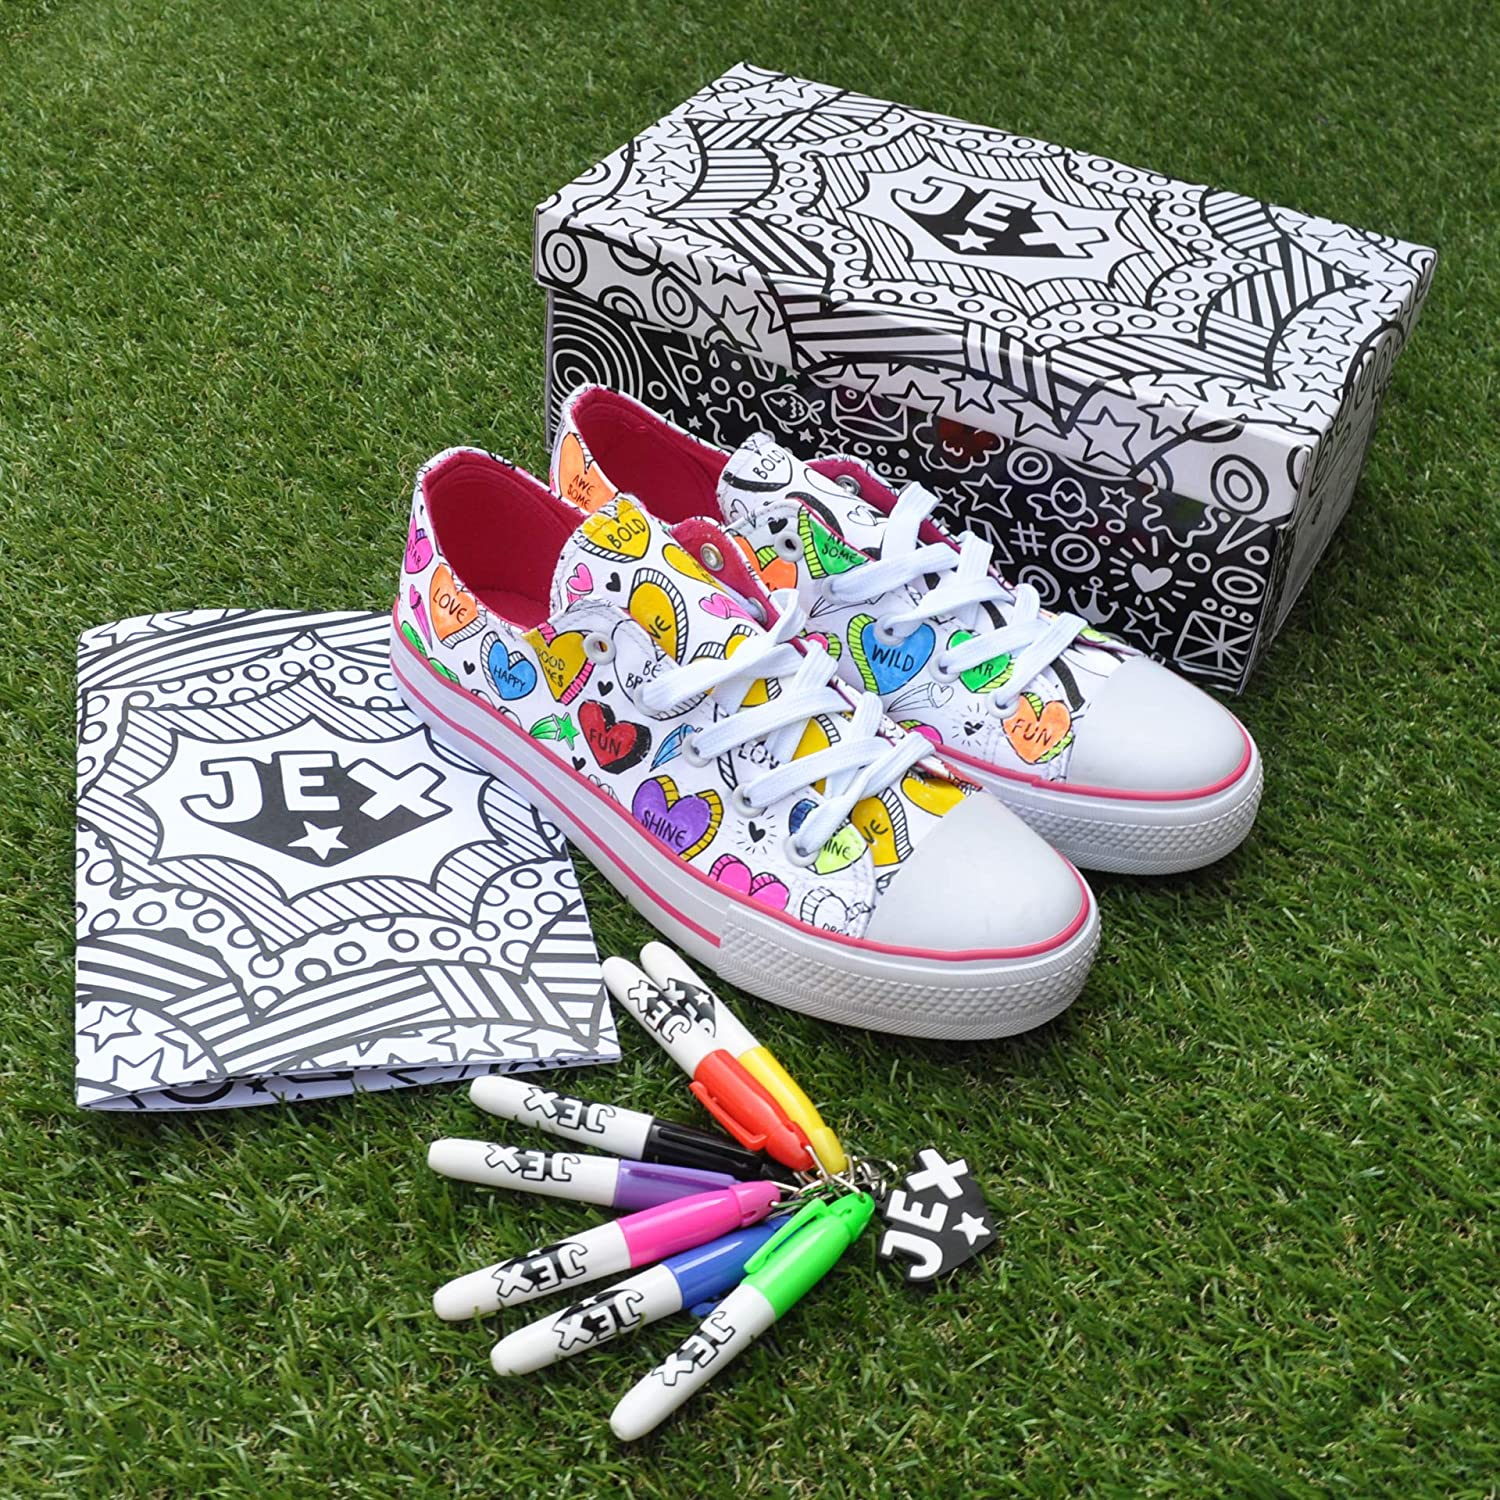 Jex Colour in Trainers JHEA400512 Positive Vibes Hearts Size 13.5 White